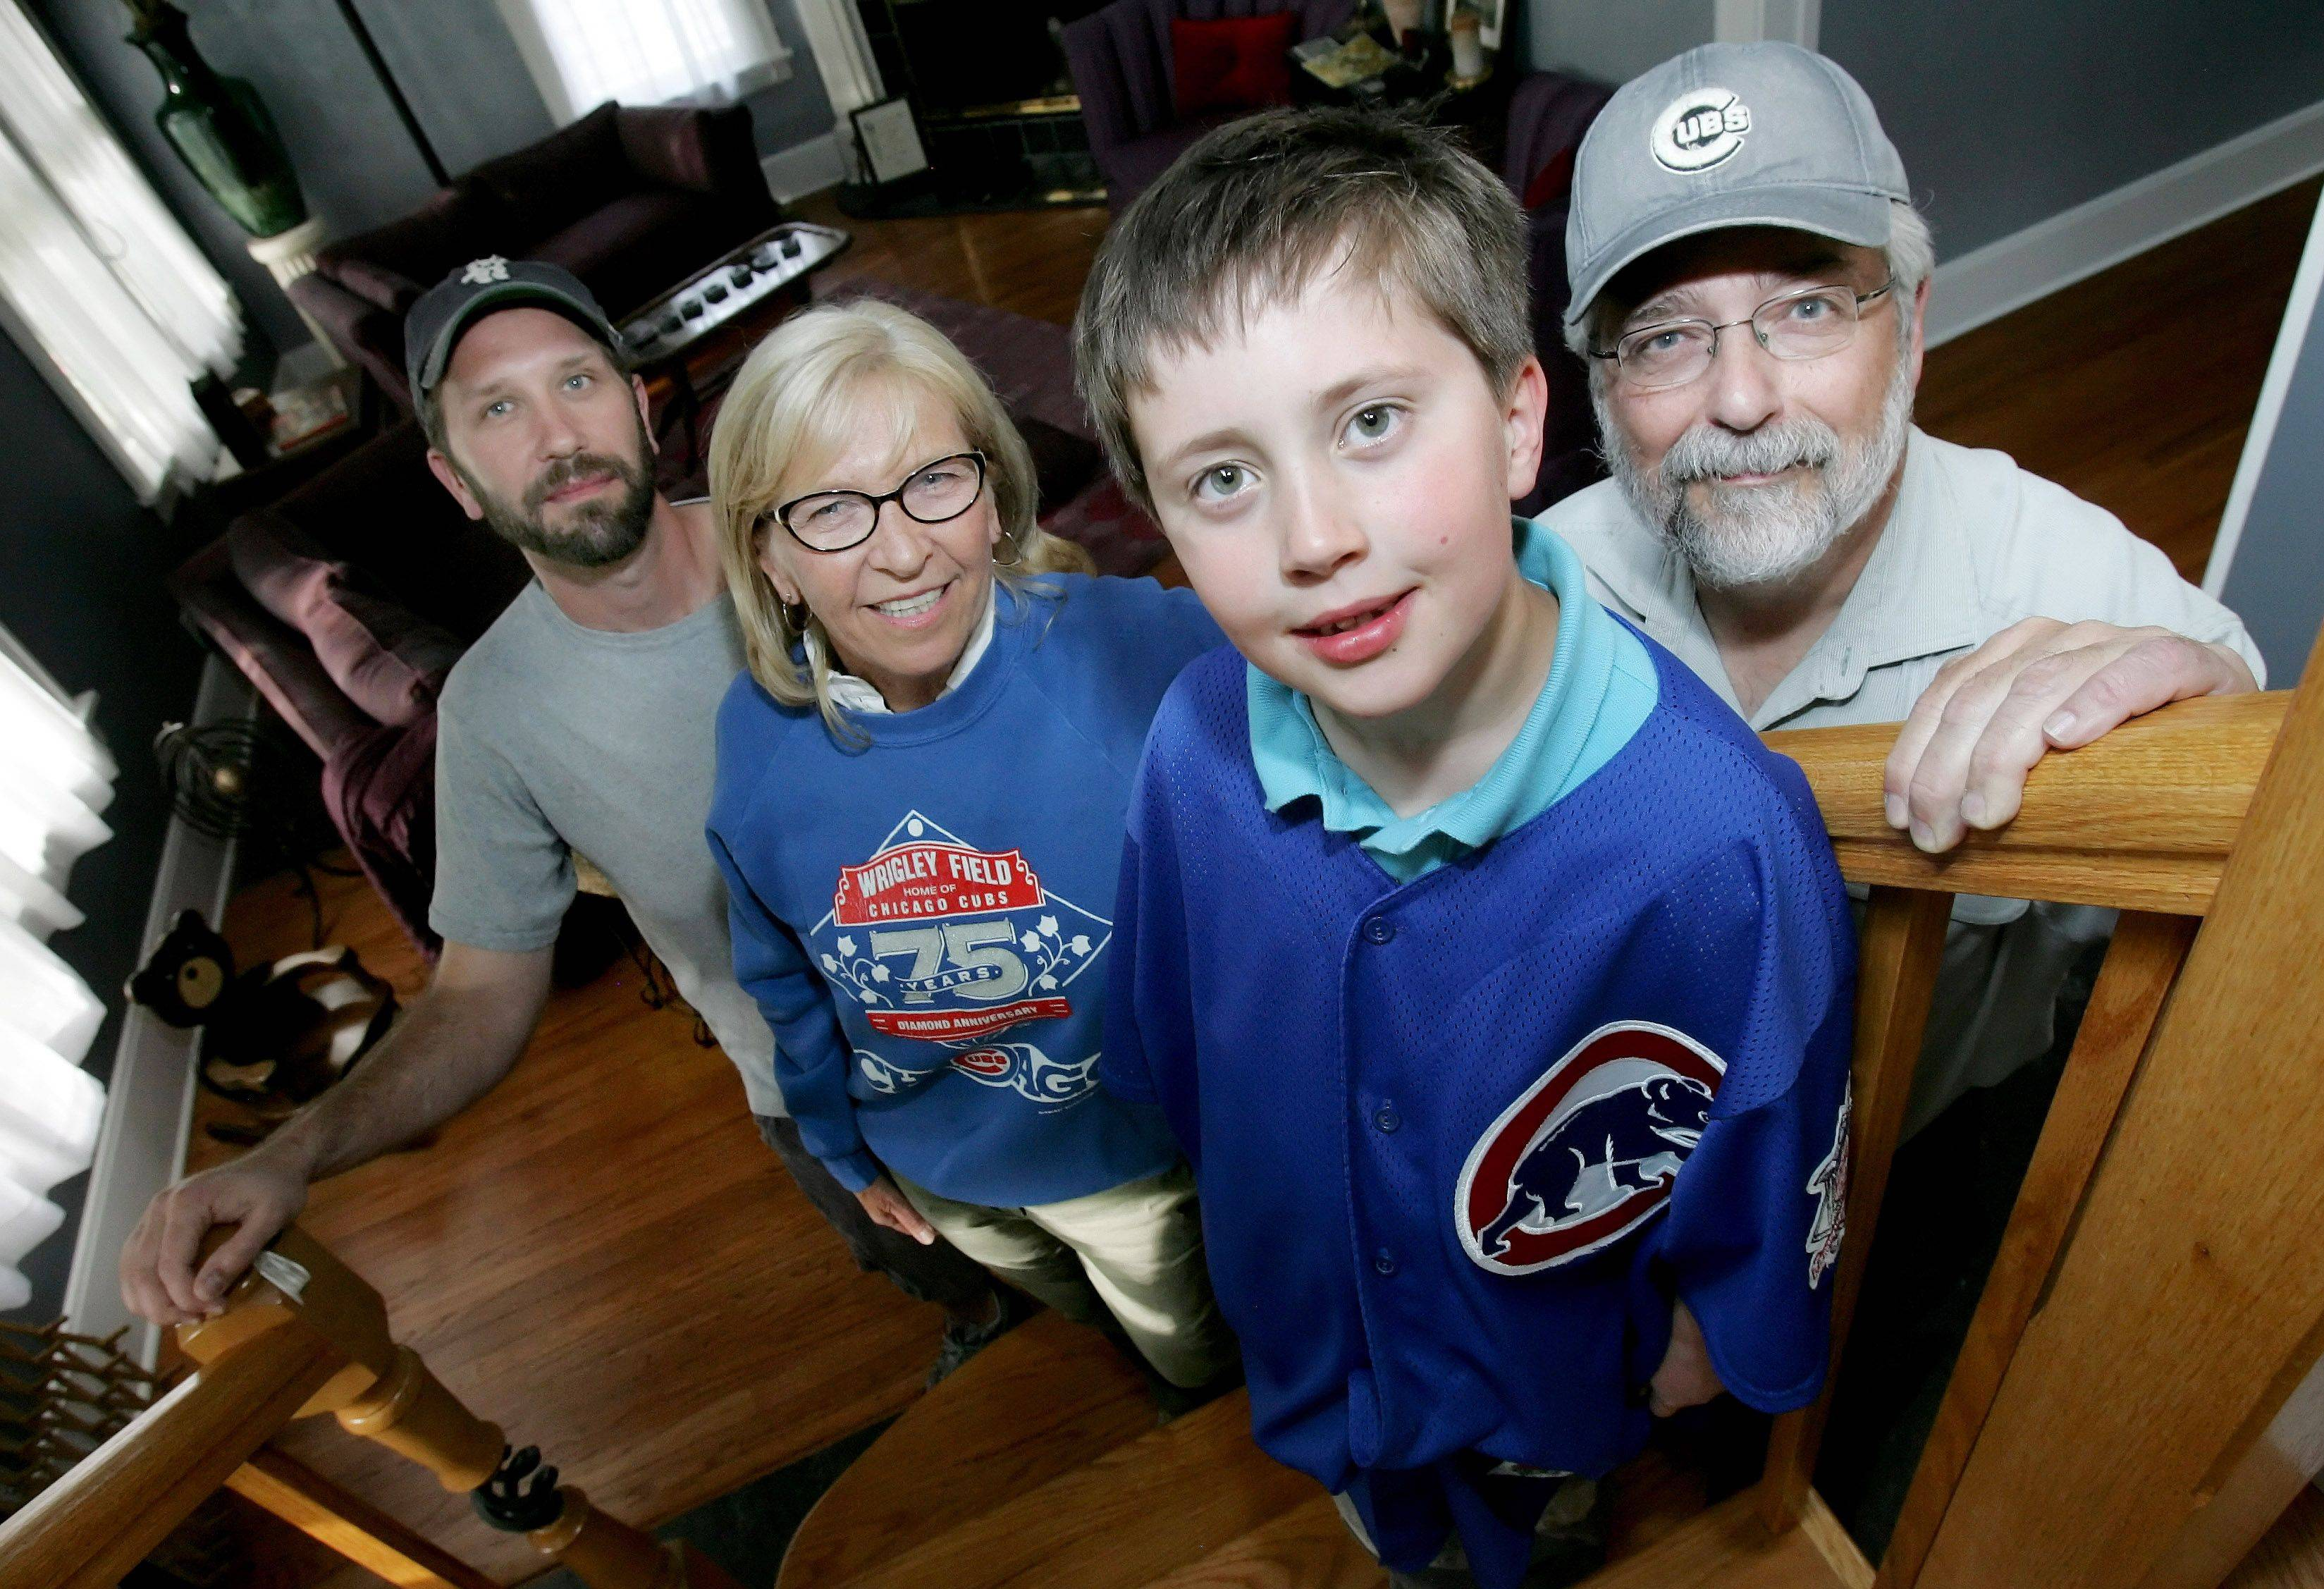 Opening Day at Wrigley Field is a holiday at the Hruby household in Wheaton. Matriarch Debra and her son Sean, left, of Geneva, will be attending their 28th consecutive Cubs' opener today. Sean's dad Mike, right, has been to about half of those, while Sean's son Cal, 7, is joining the clan for the third straight year.